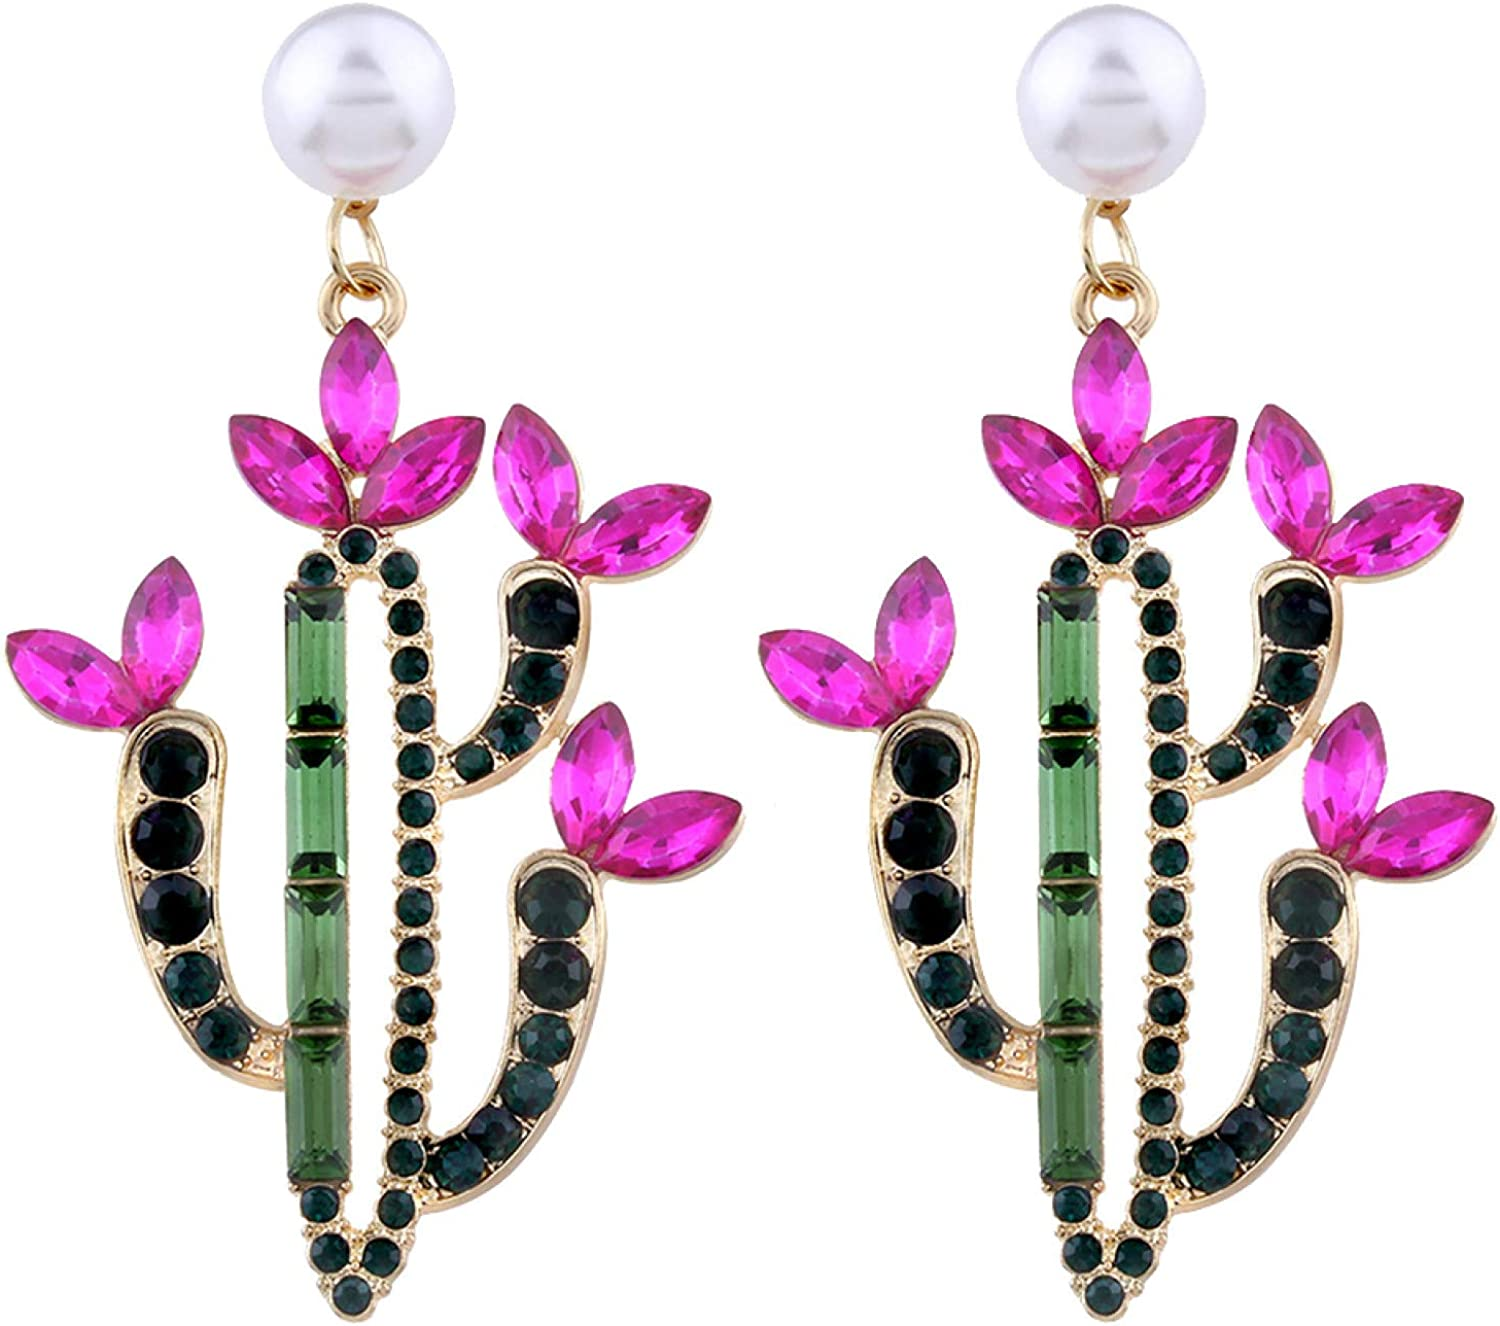 Colorful Rhinestone Cactus Faux Pearl Charm Statement Stud Earrings Gift for Women Girls Teens